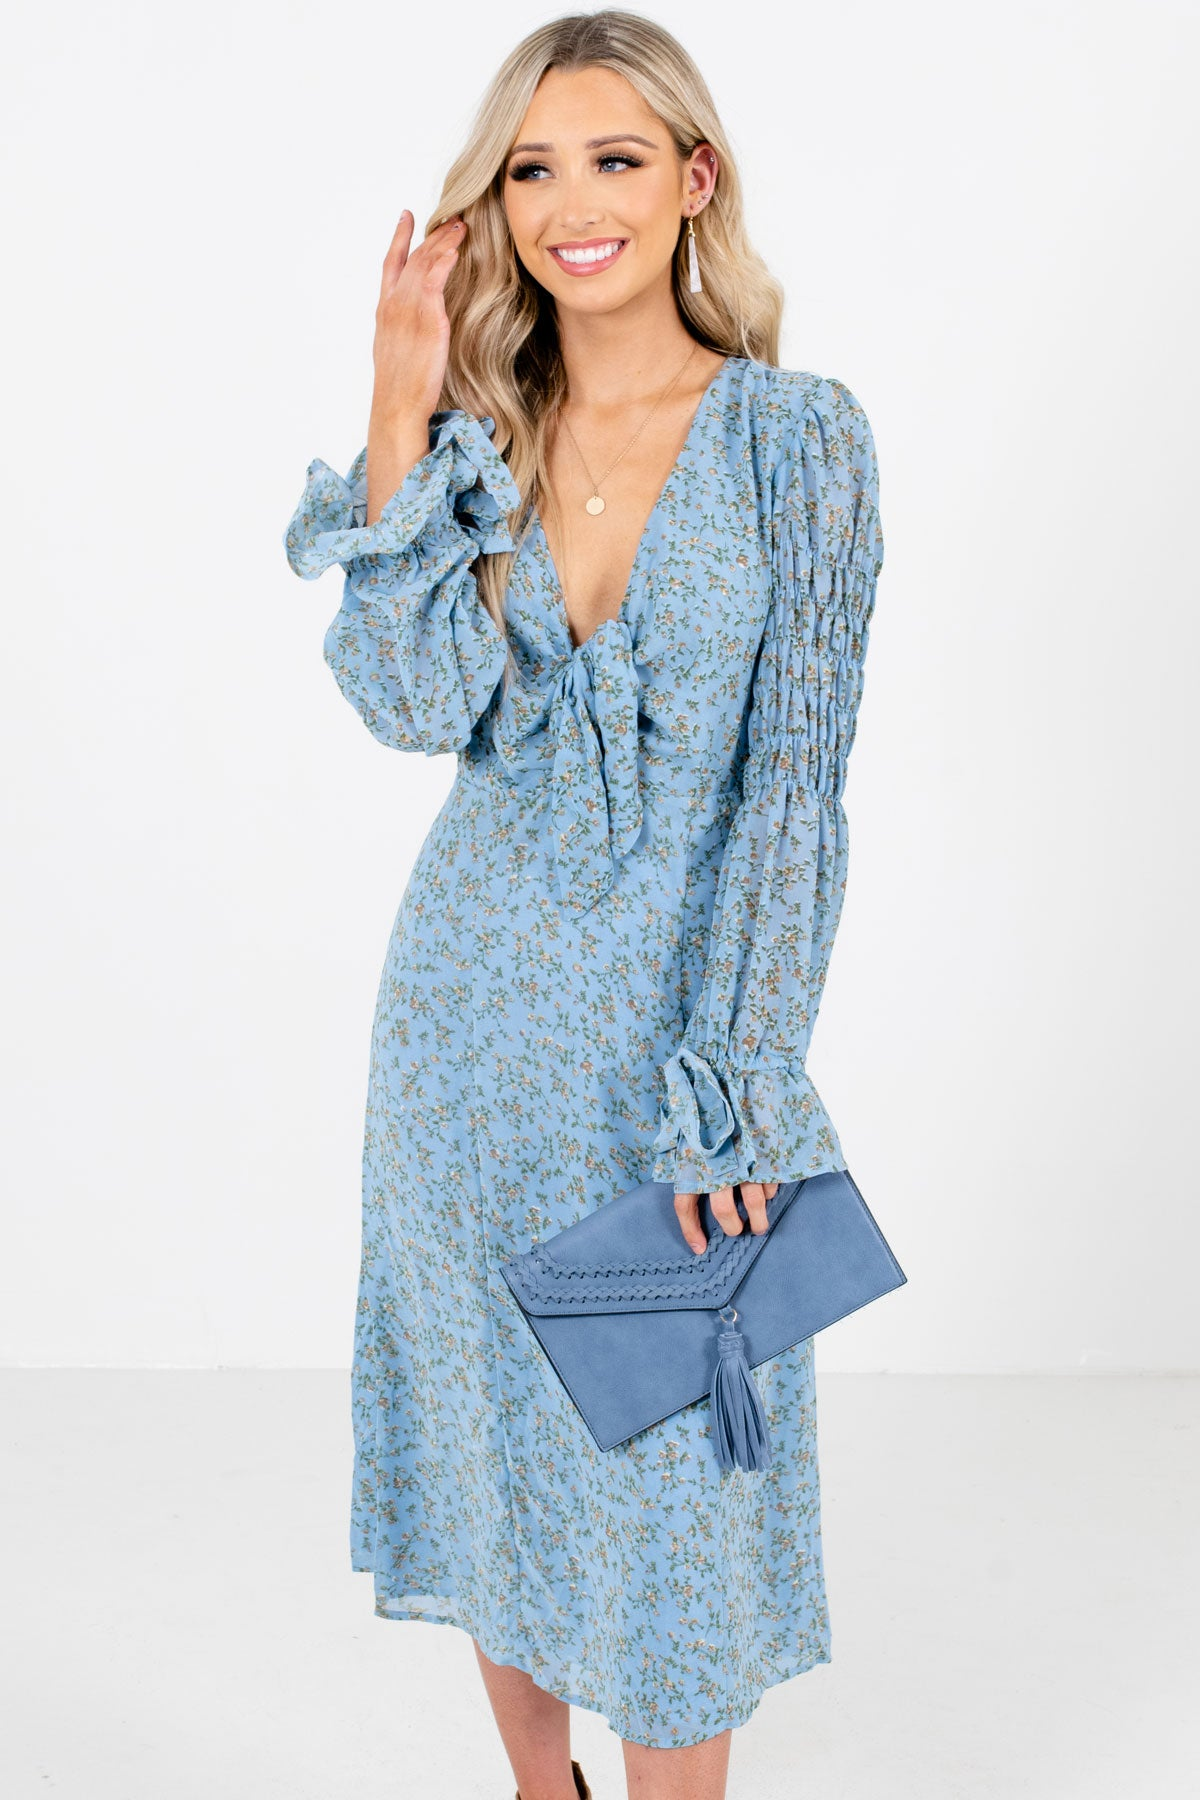 Blue Floral Patterned Boutique Midi Dresses for Women